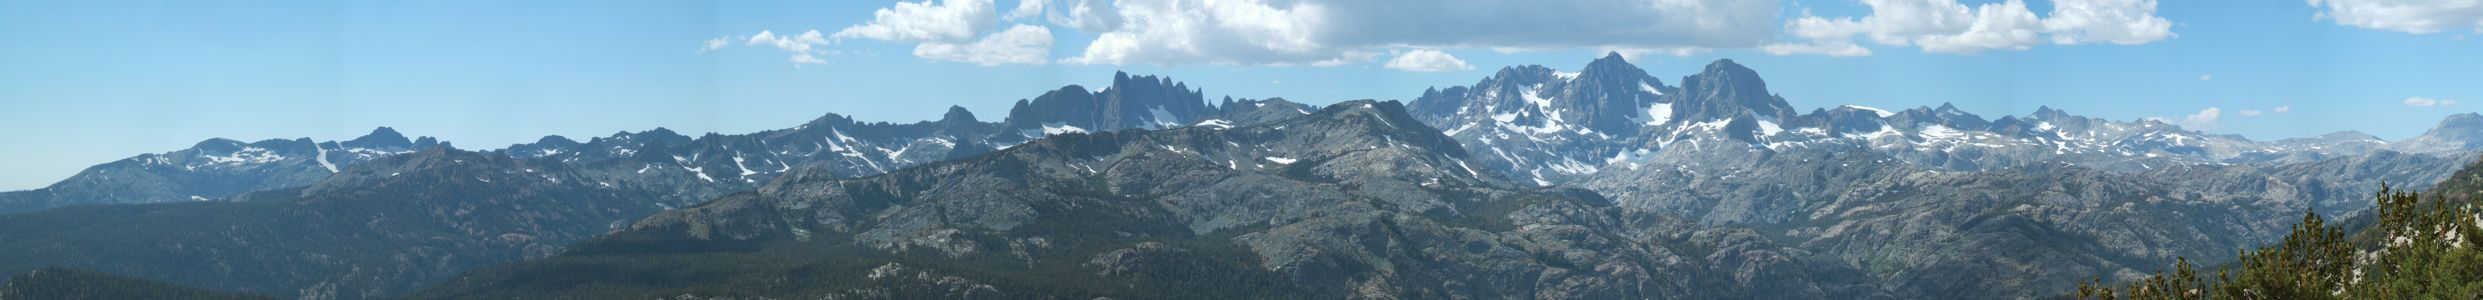 Ritter Range from San Joaquin Ridge - 9/2011